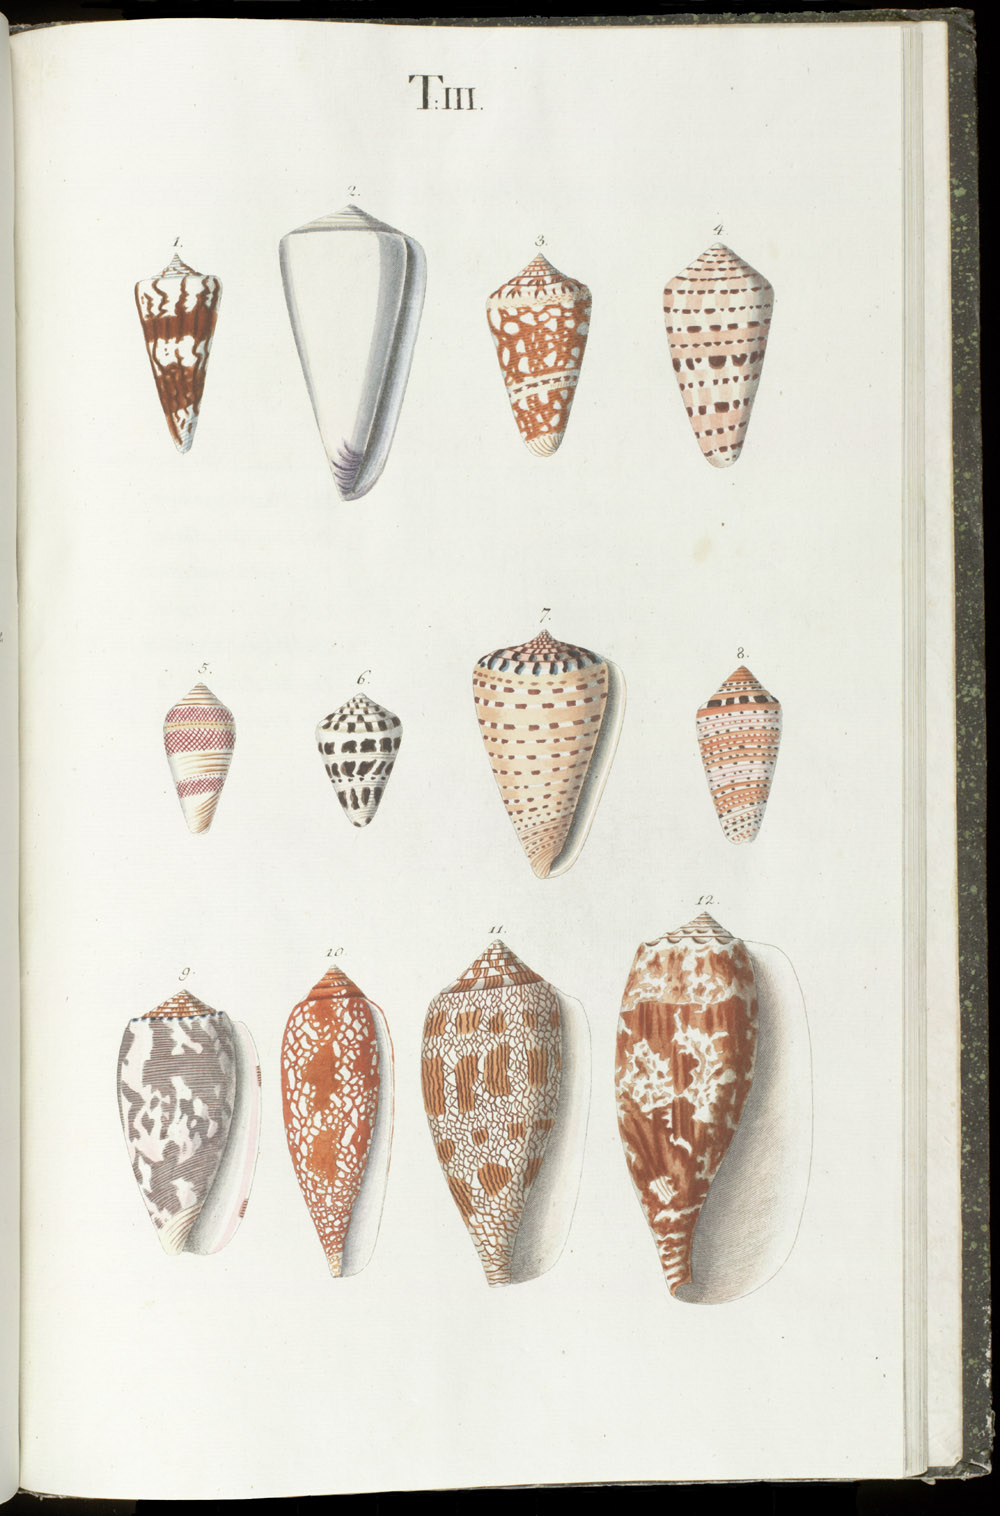 Color illustrations of seashells (univalves),  Image number:SIL6-1-123a